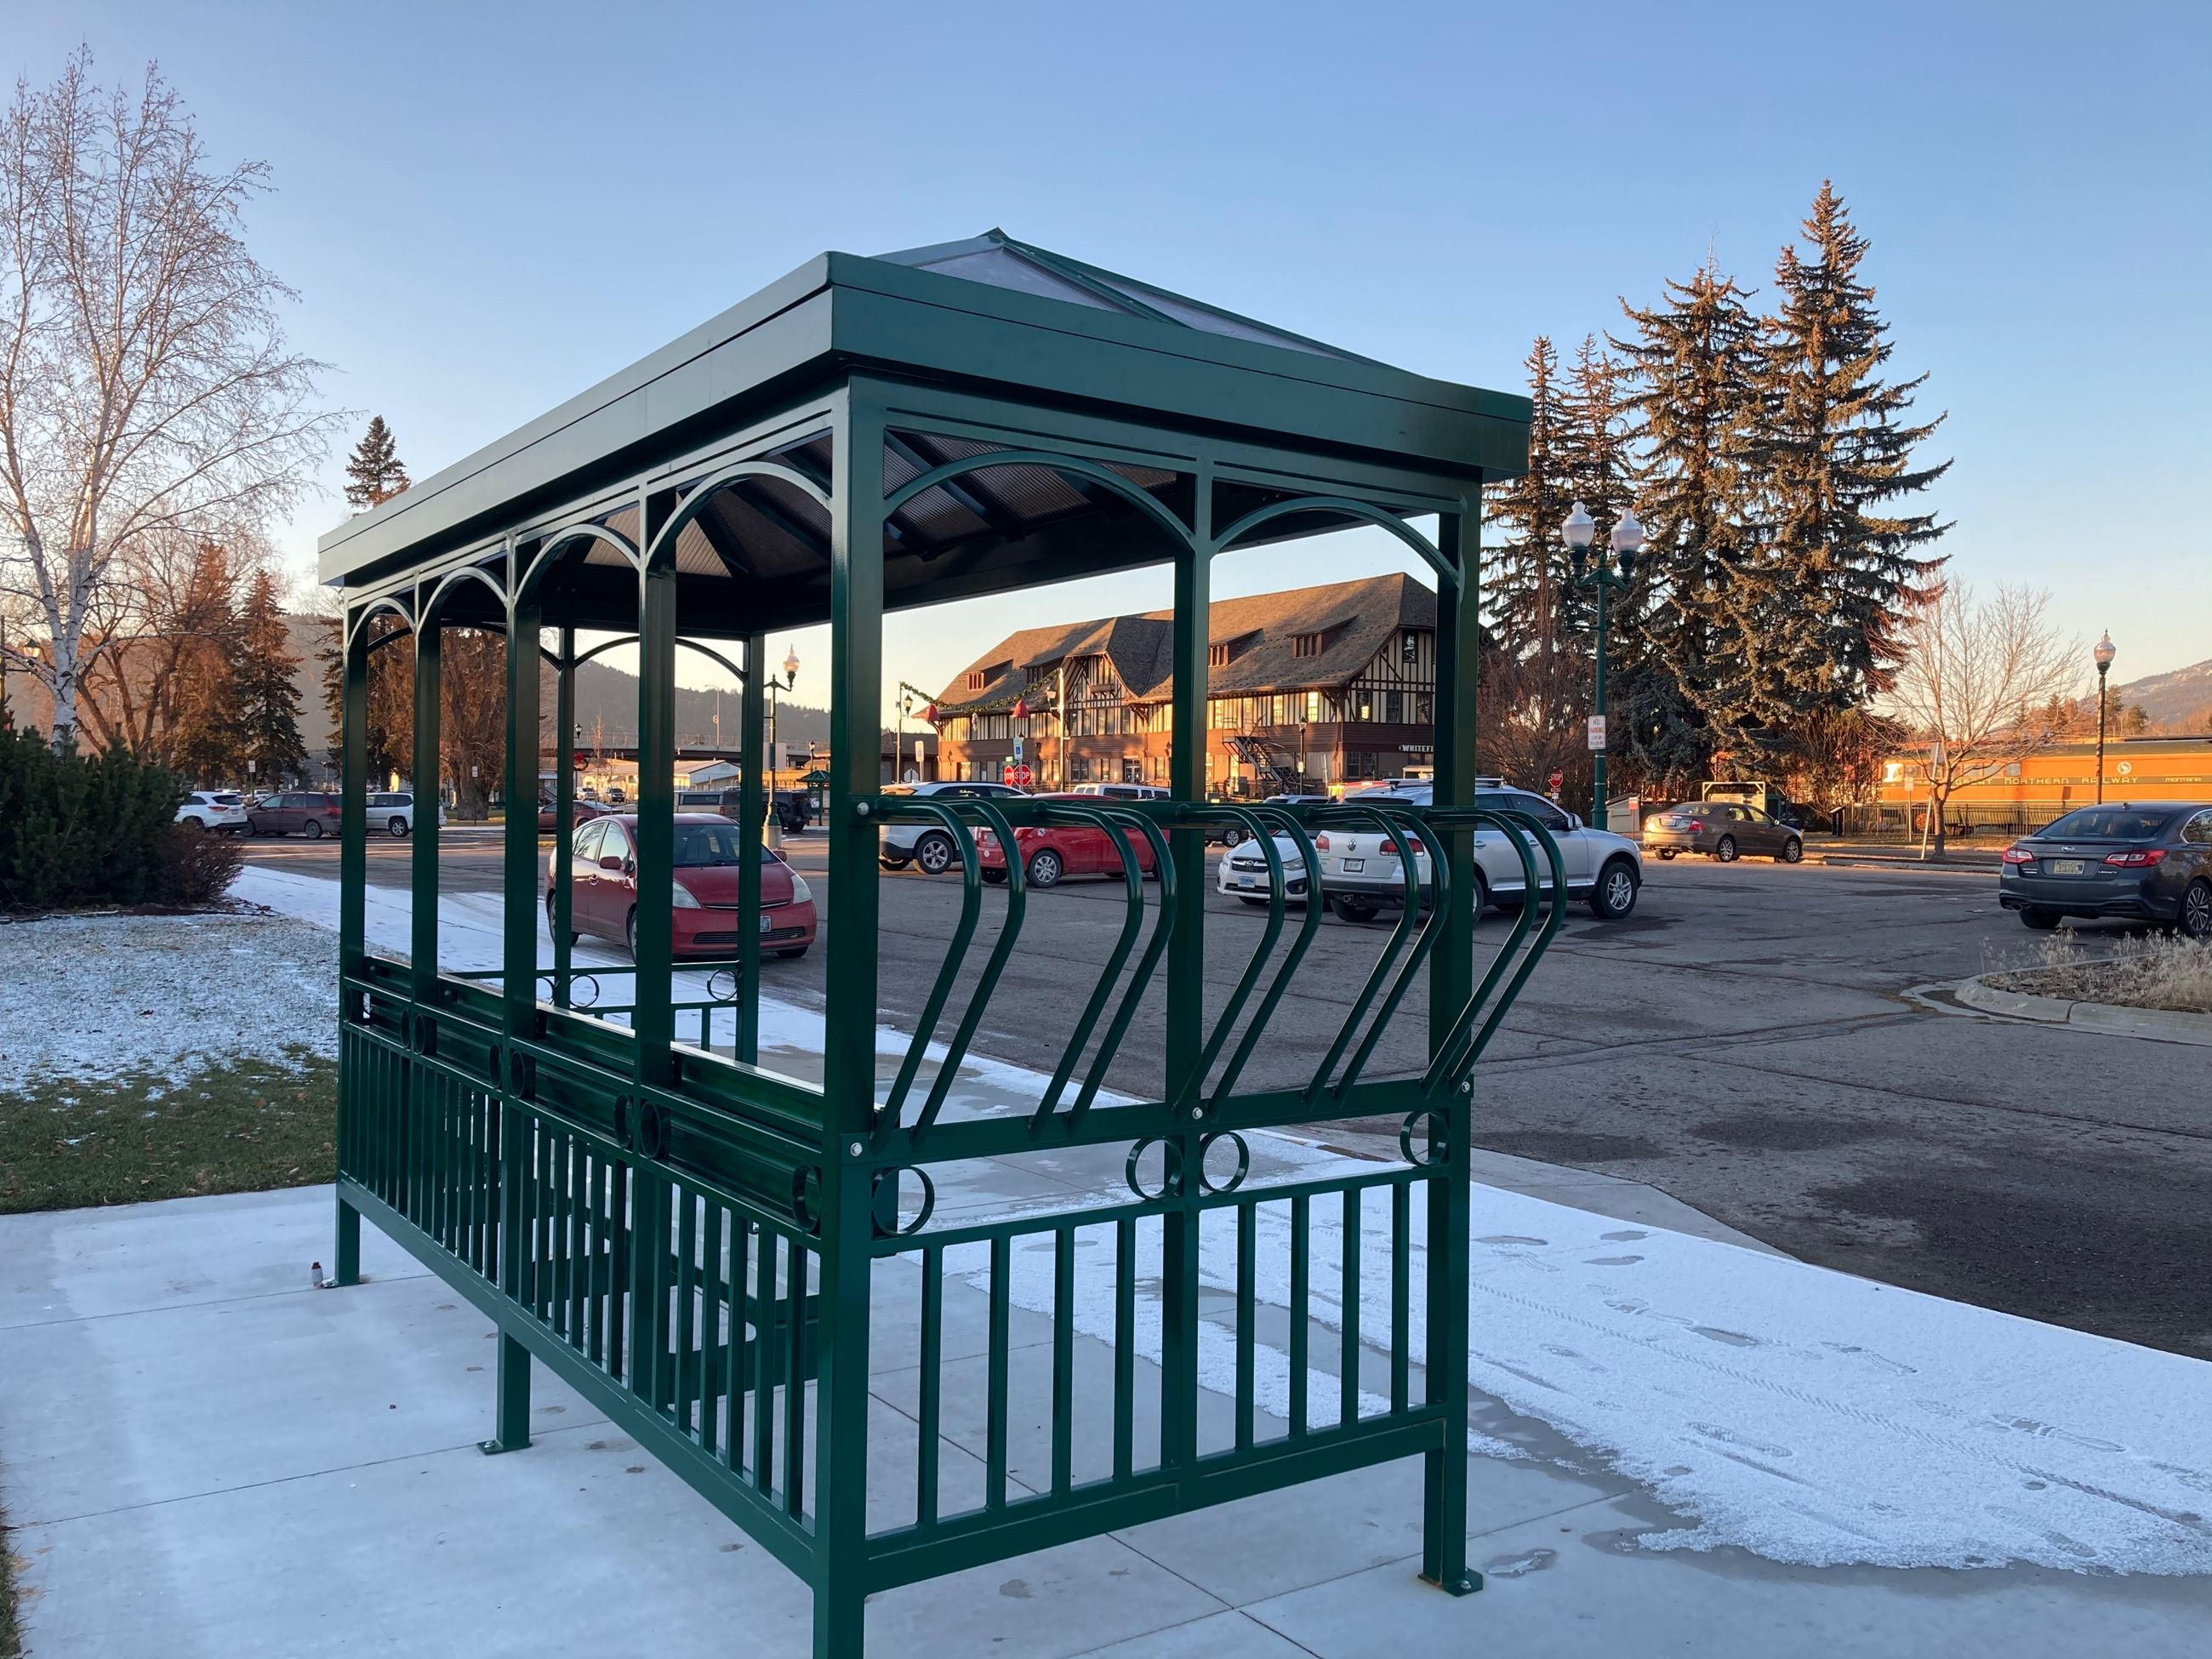 Bus Shelter at Depot Transit Hub